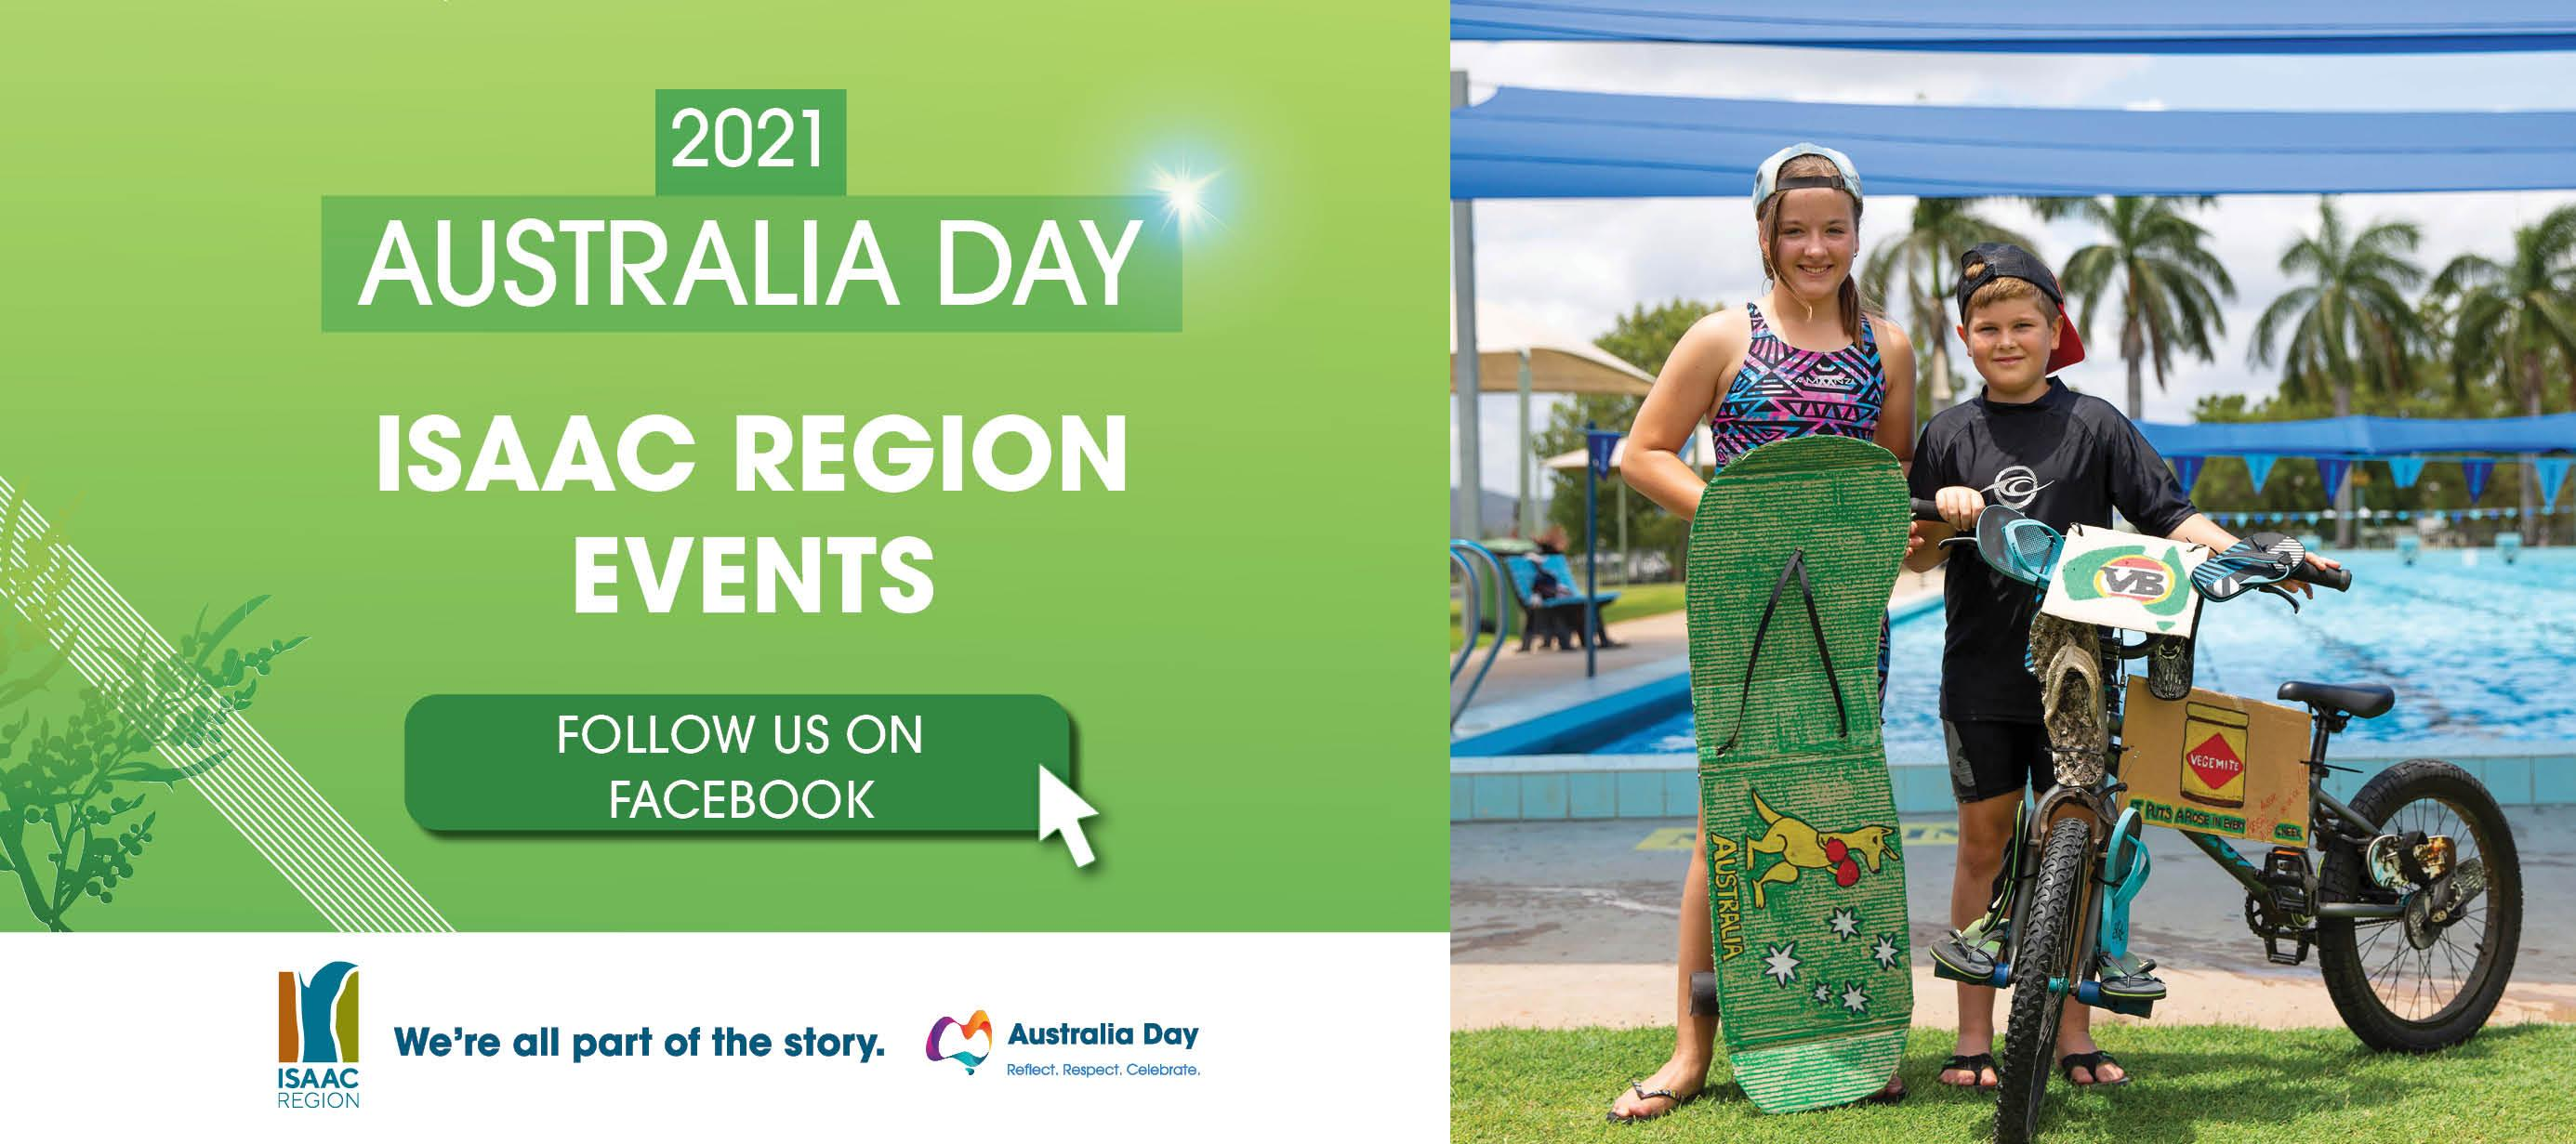 2021 Australia day events web page banner